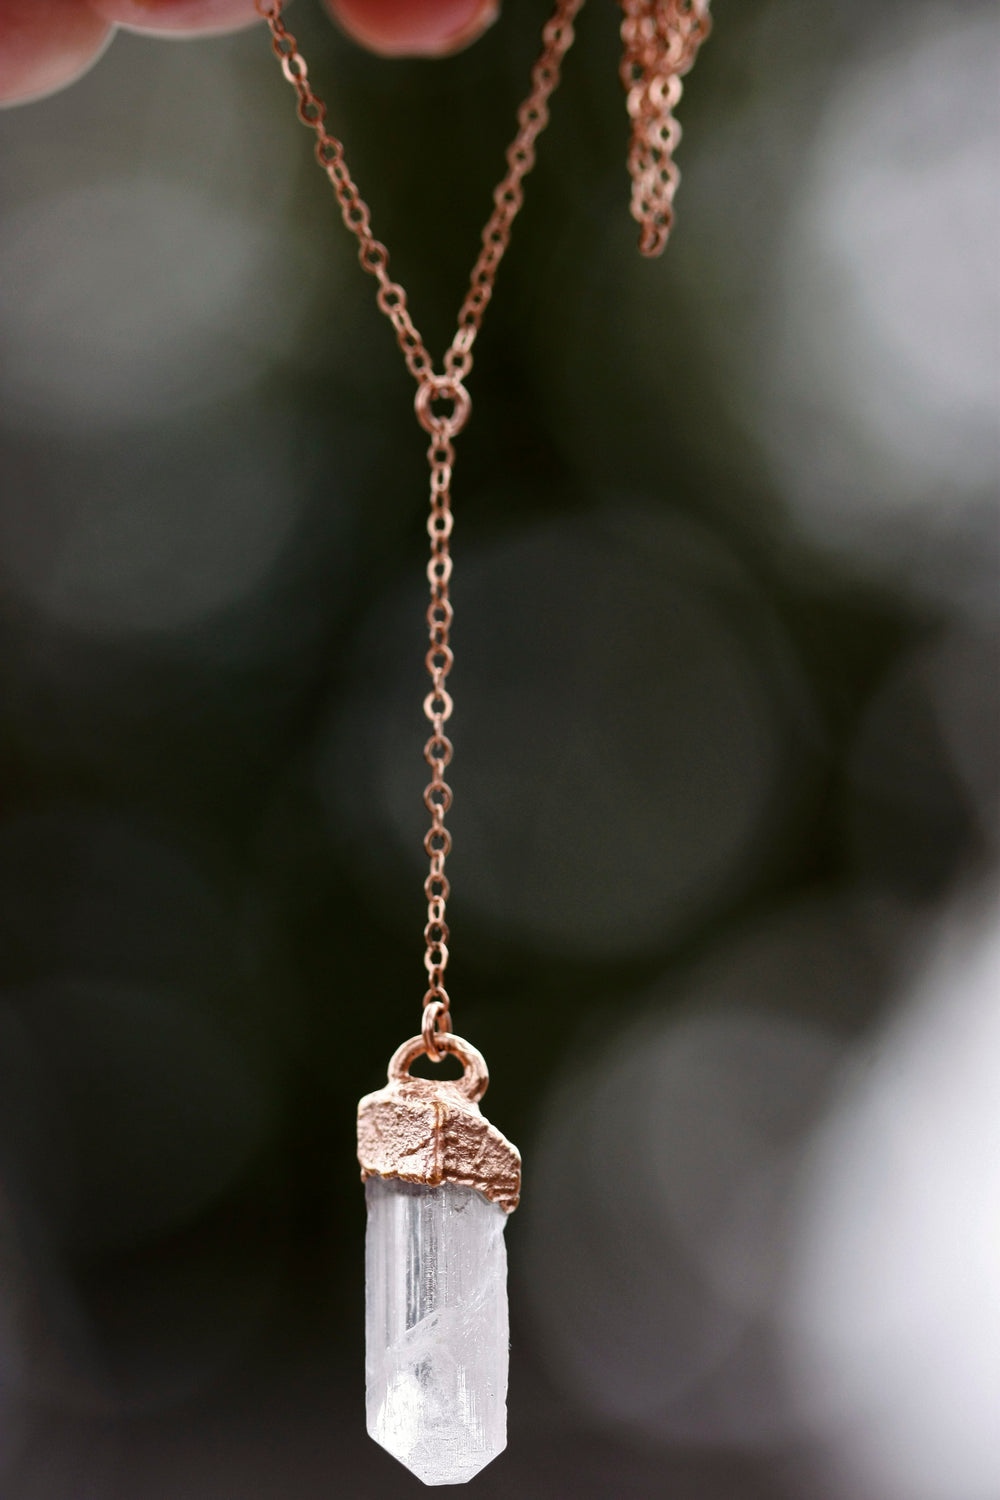 Kind Necklace // Rose Gold, Gold, or Silver